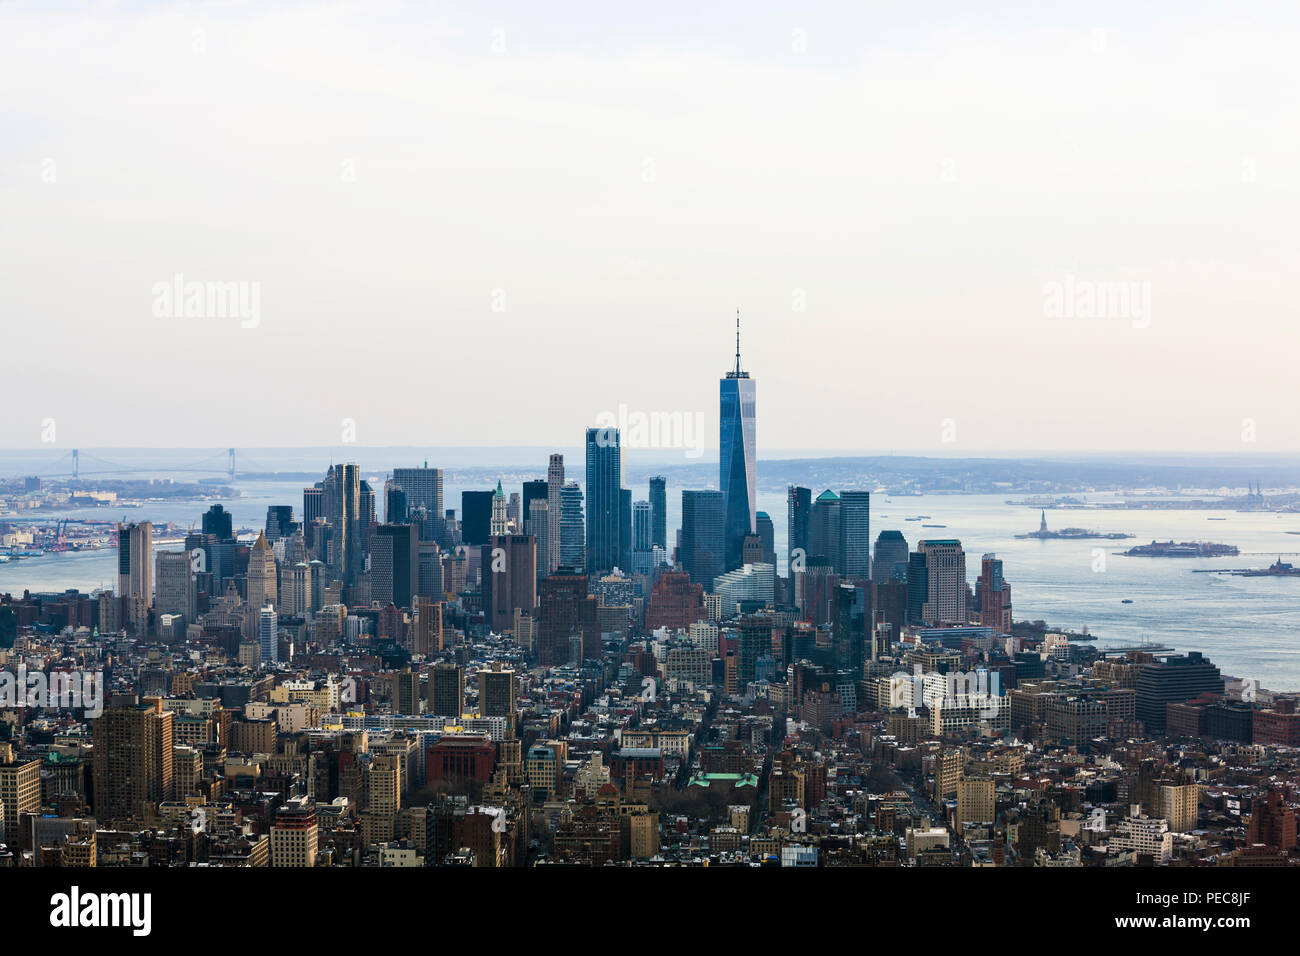 View from above on One World Trade Center and skyscrapers in the financial district, skyline, Manhattan, New York City, New York - Stock Image